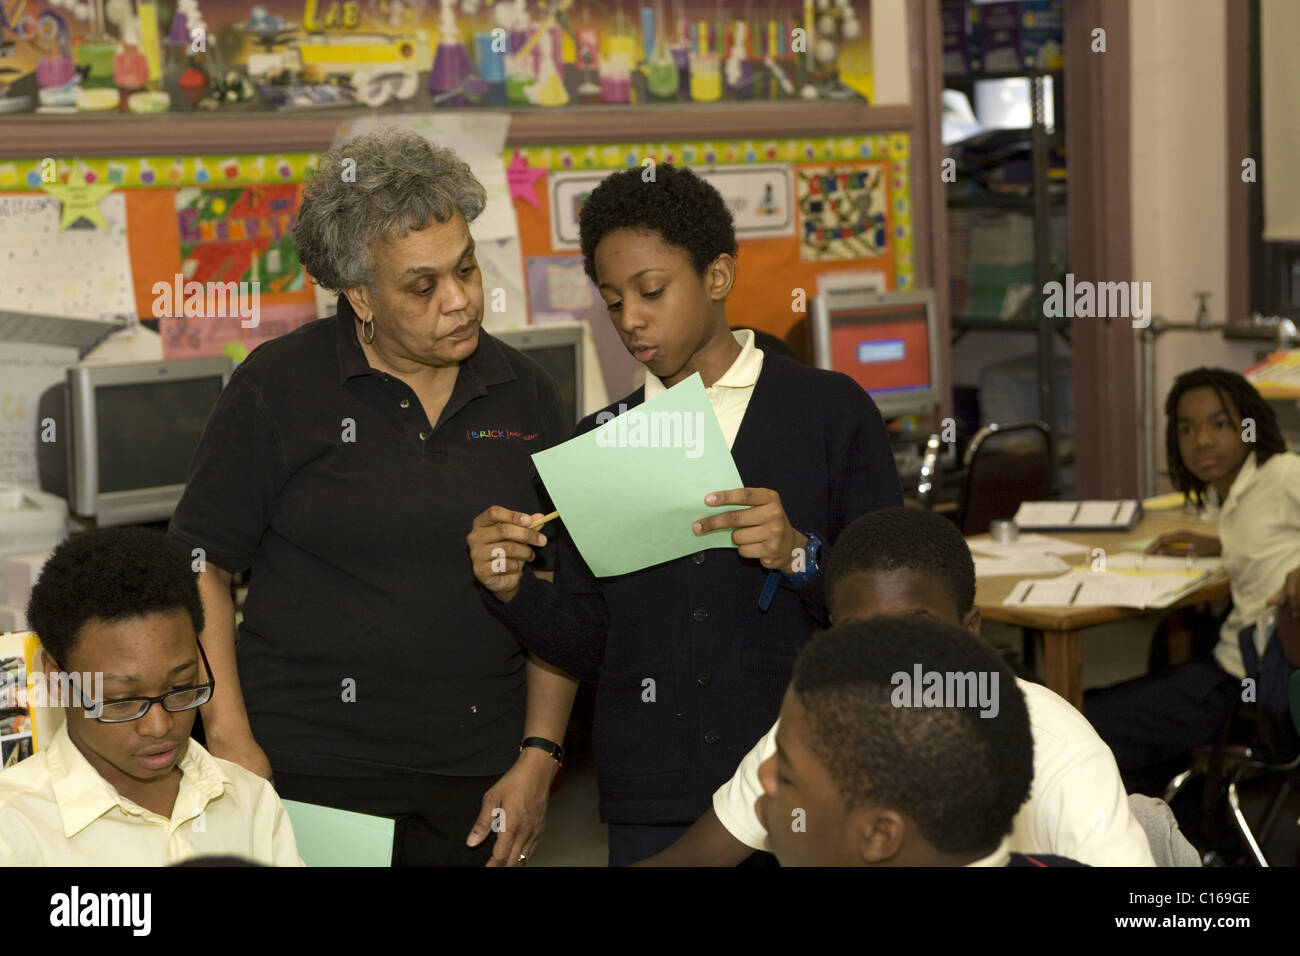 Science teacher works with a student on an assignment at the BRICK Academy Junior High School in Newark, NJ. - Stock Image